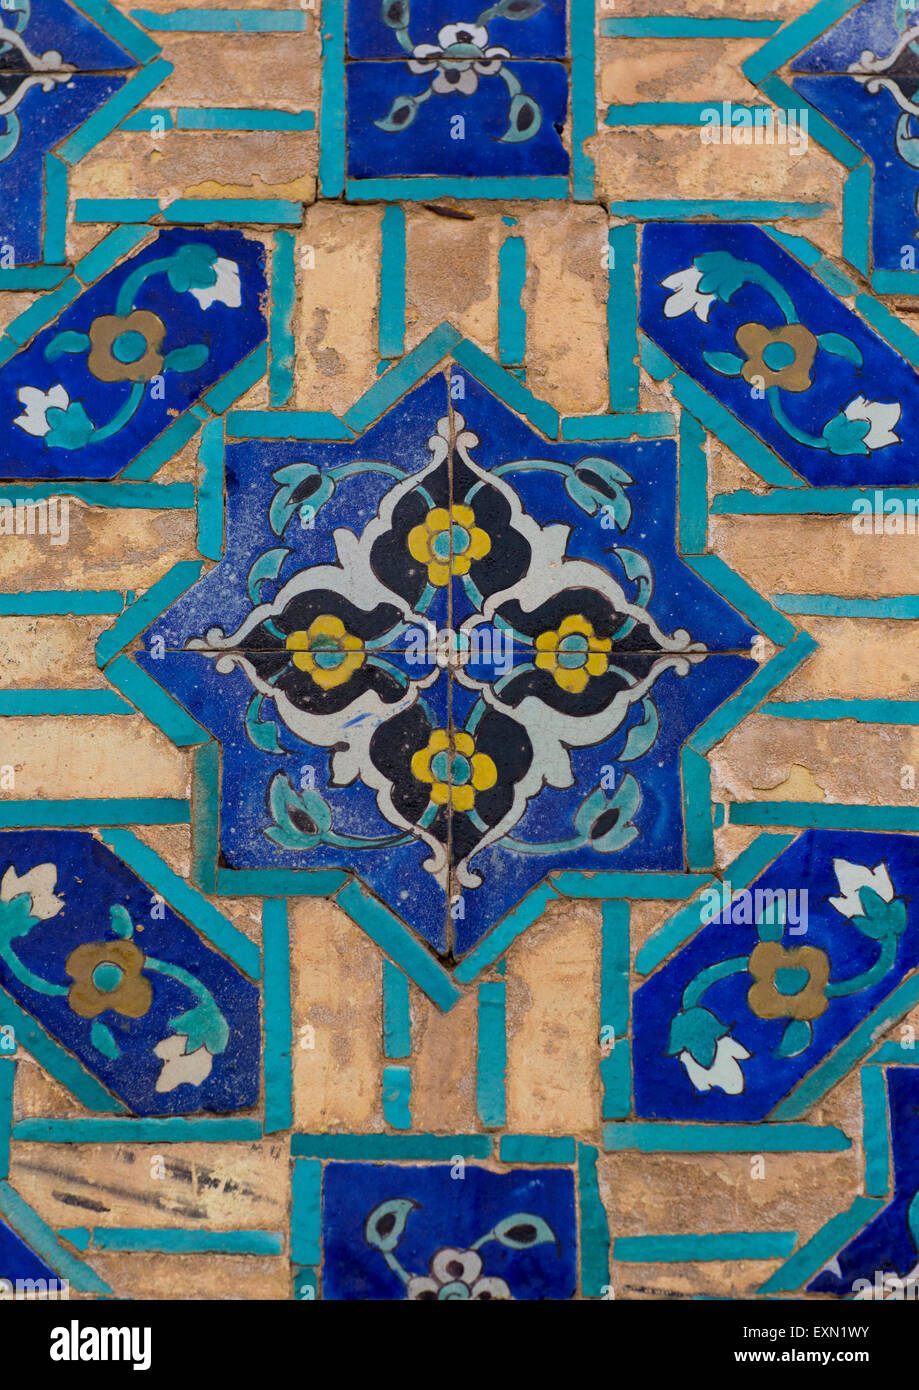 Mosaic Pattern With Ceramic Tiles In Friday Mosque, Isfahan Province ...